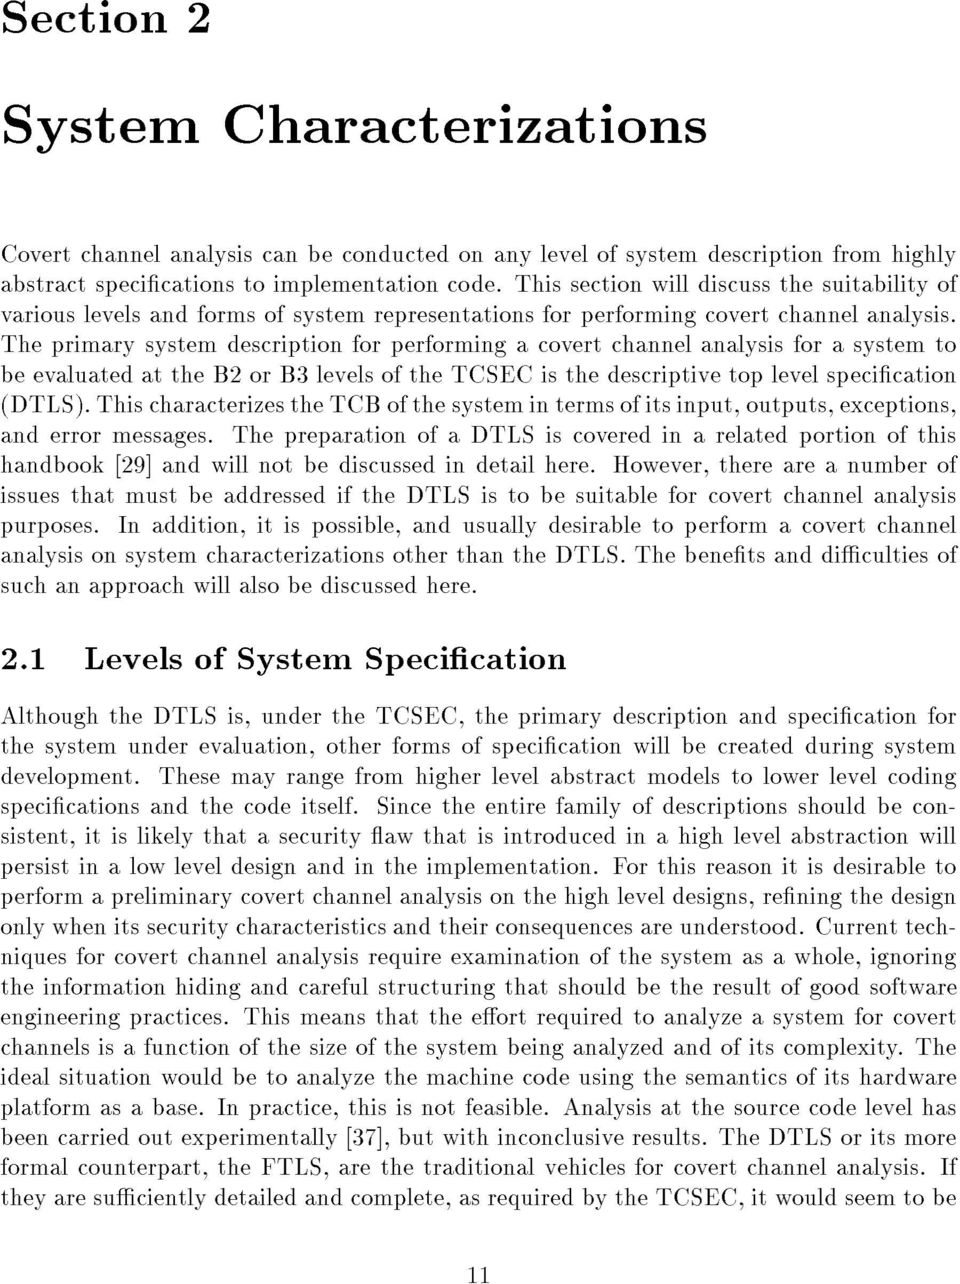 The primary system description for performing a covert channel analysis for a system to be evaluated at the B2 or B3 levels of the TCSEC is the descriptive top level specication (DTLS).